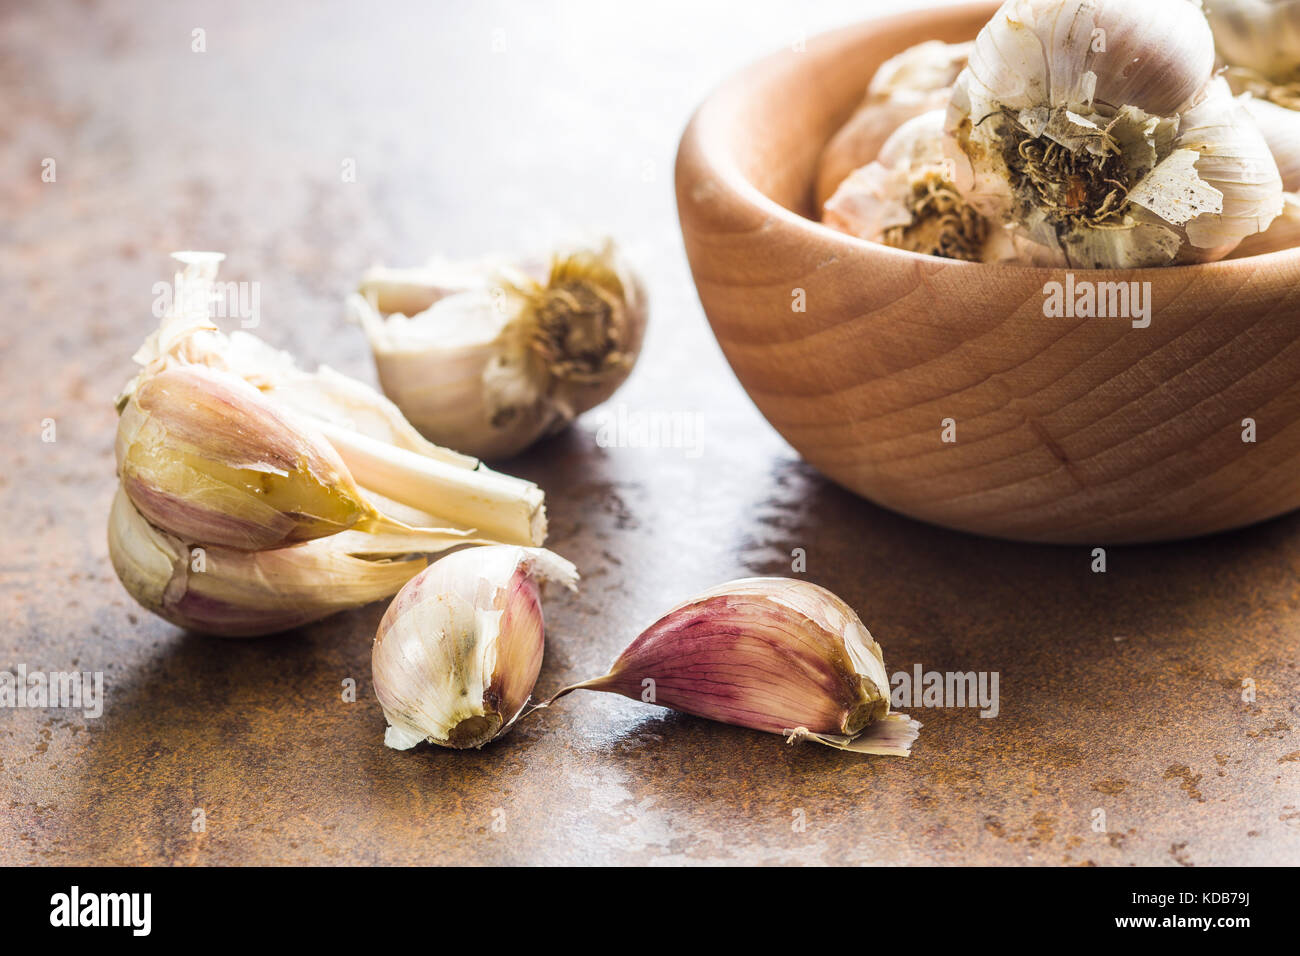 Fresh healthy garlic on kitchen table. - Stock Image